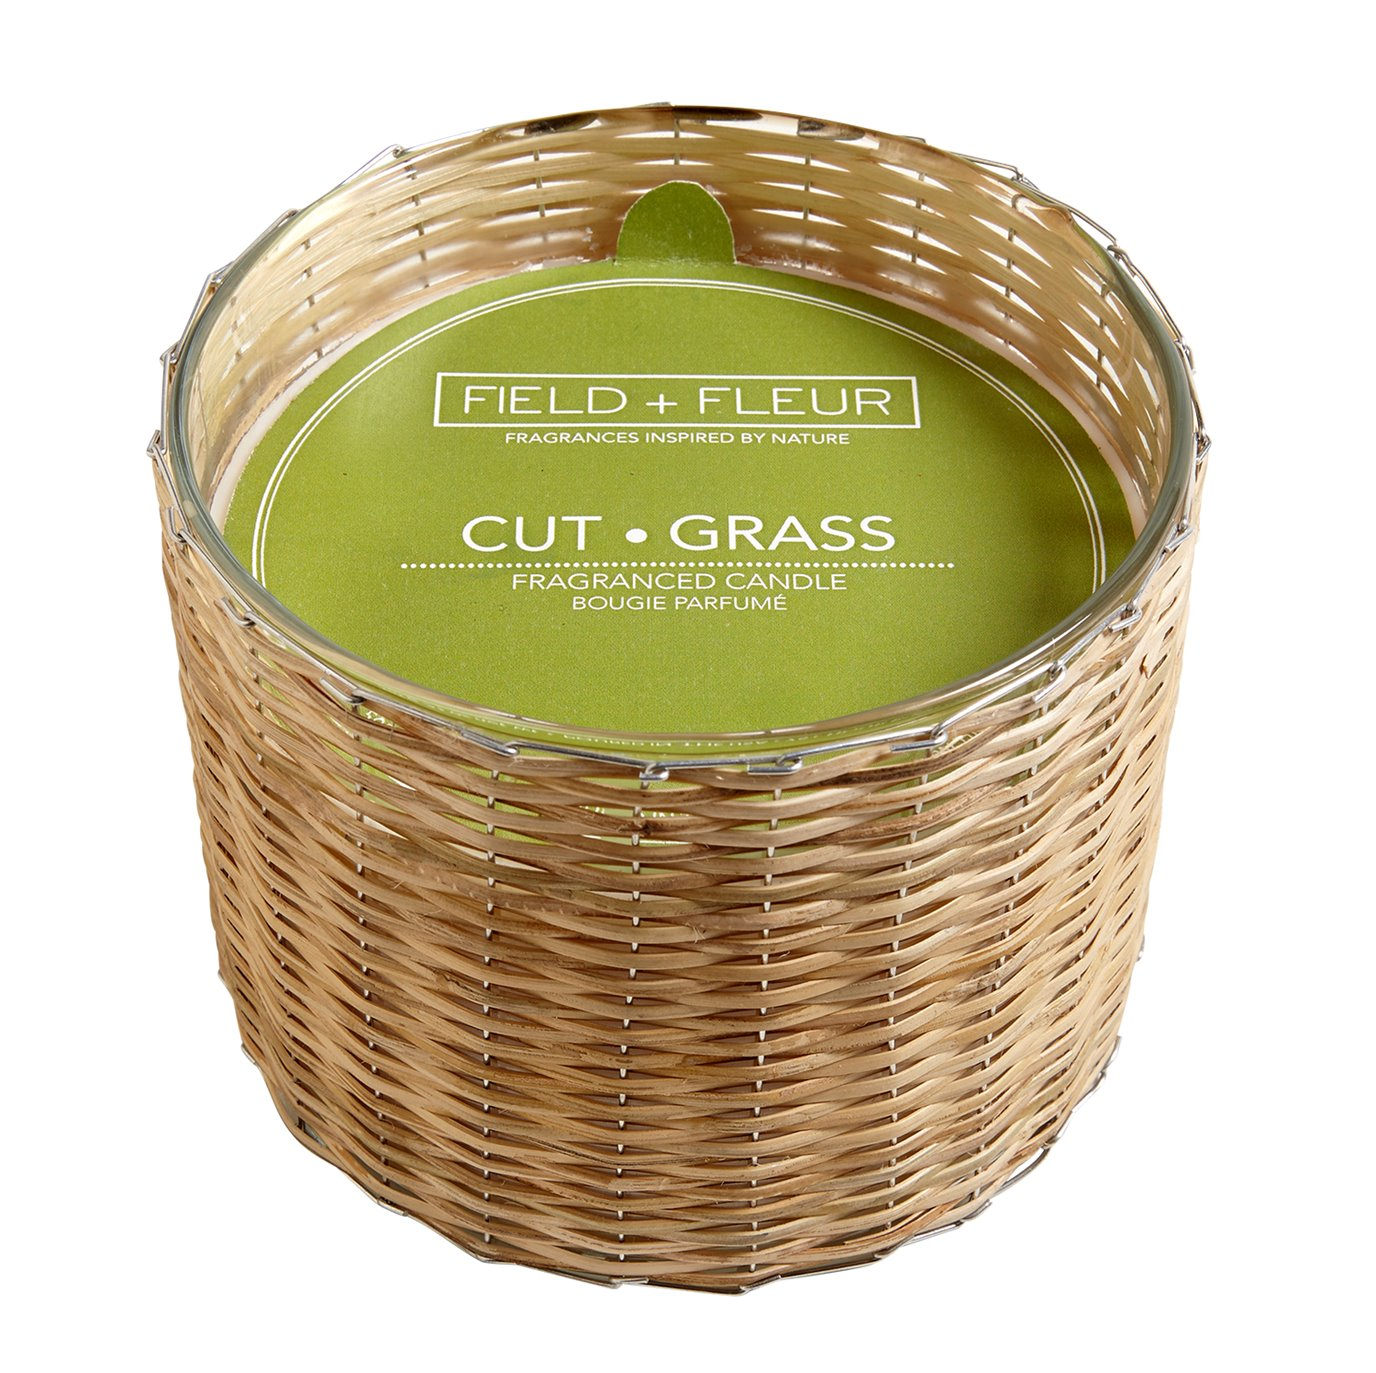 FIELD + FLEUR Cut Grass 3 Wick Handwoven Candle 21 oz